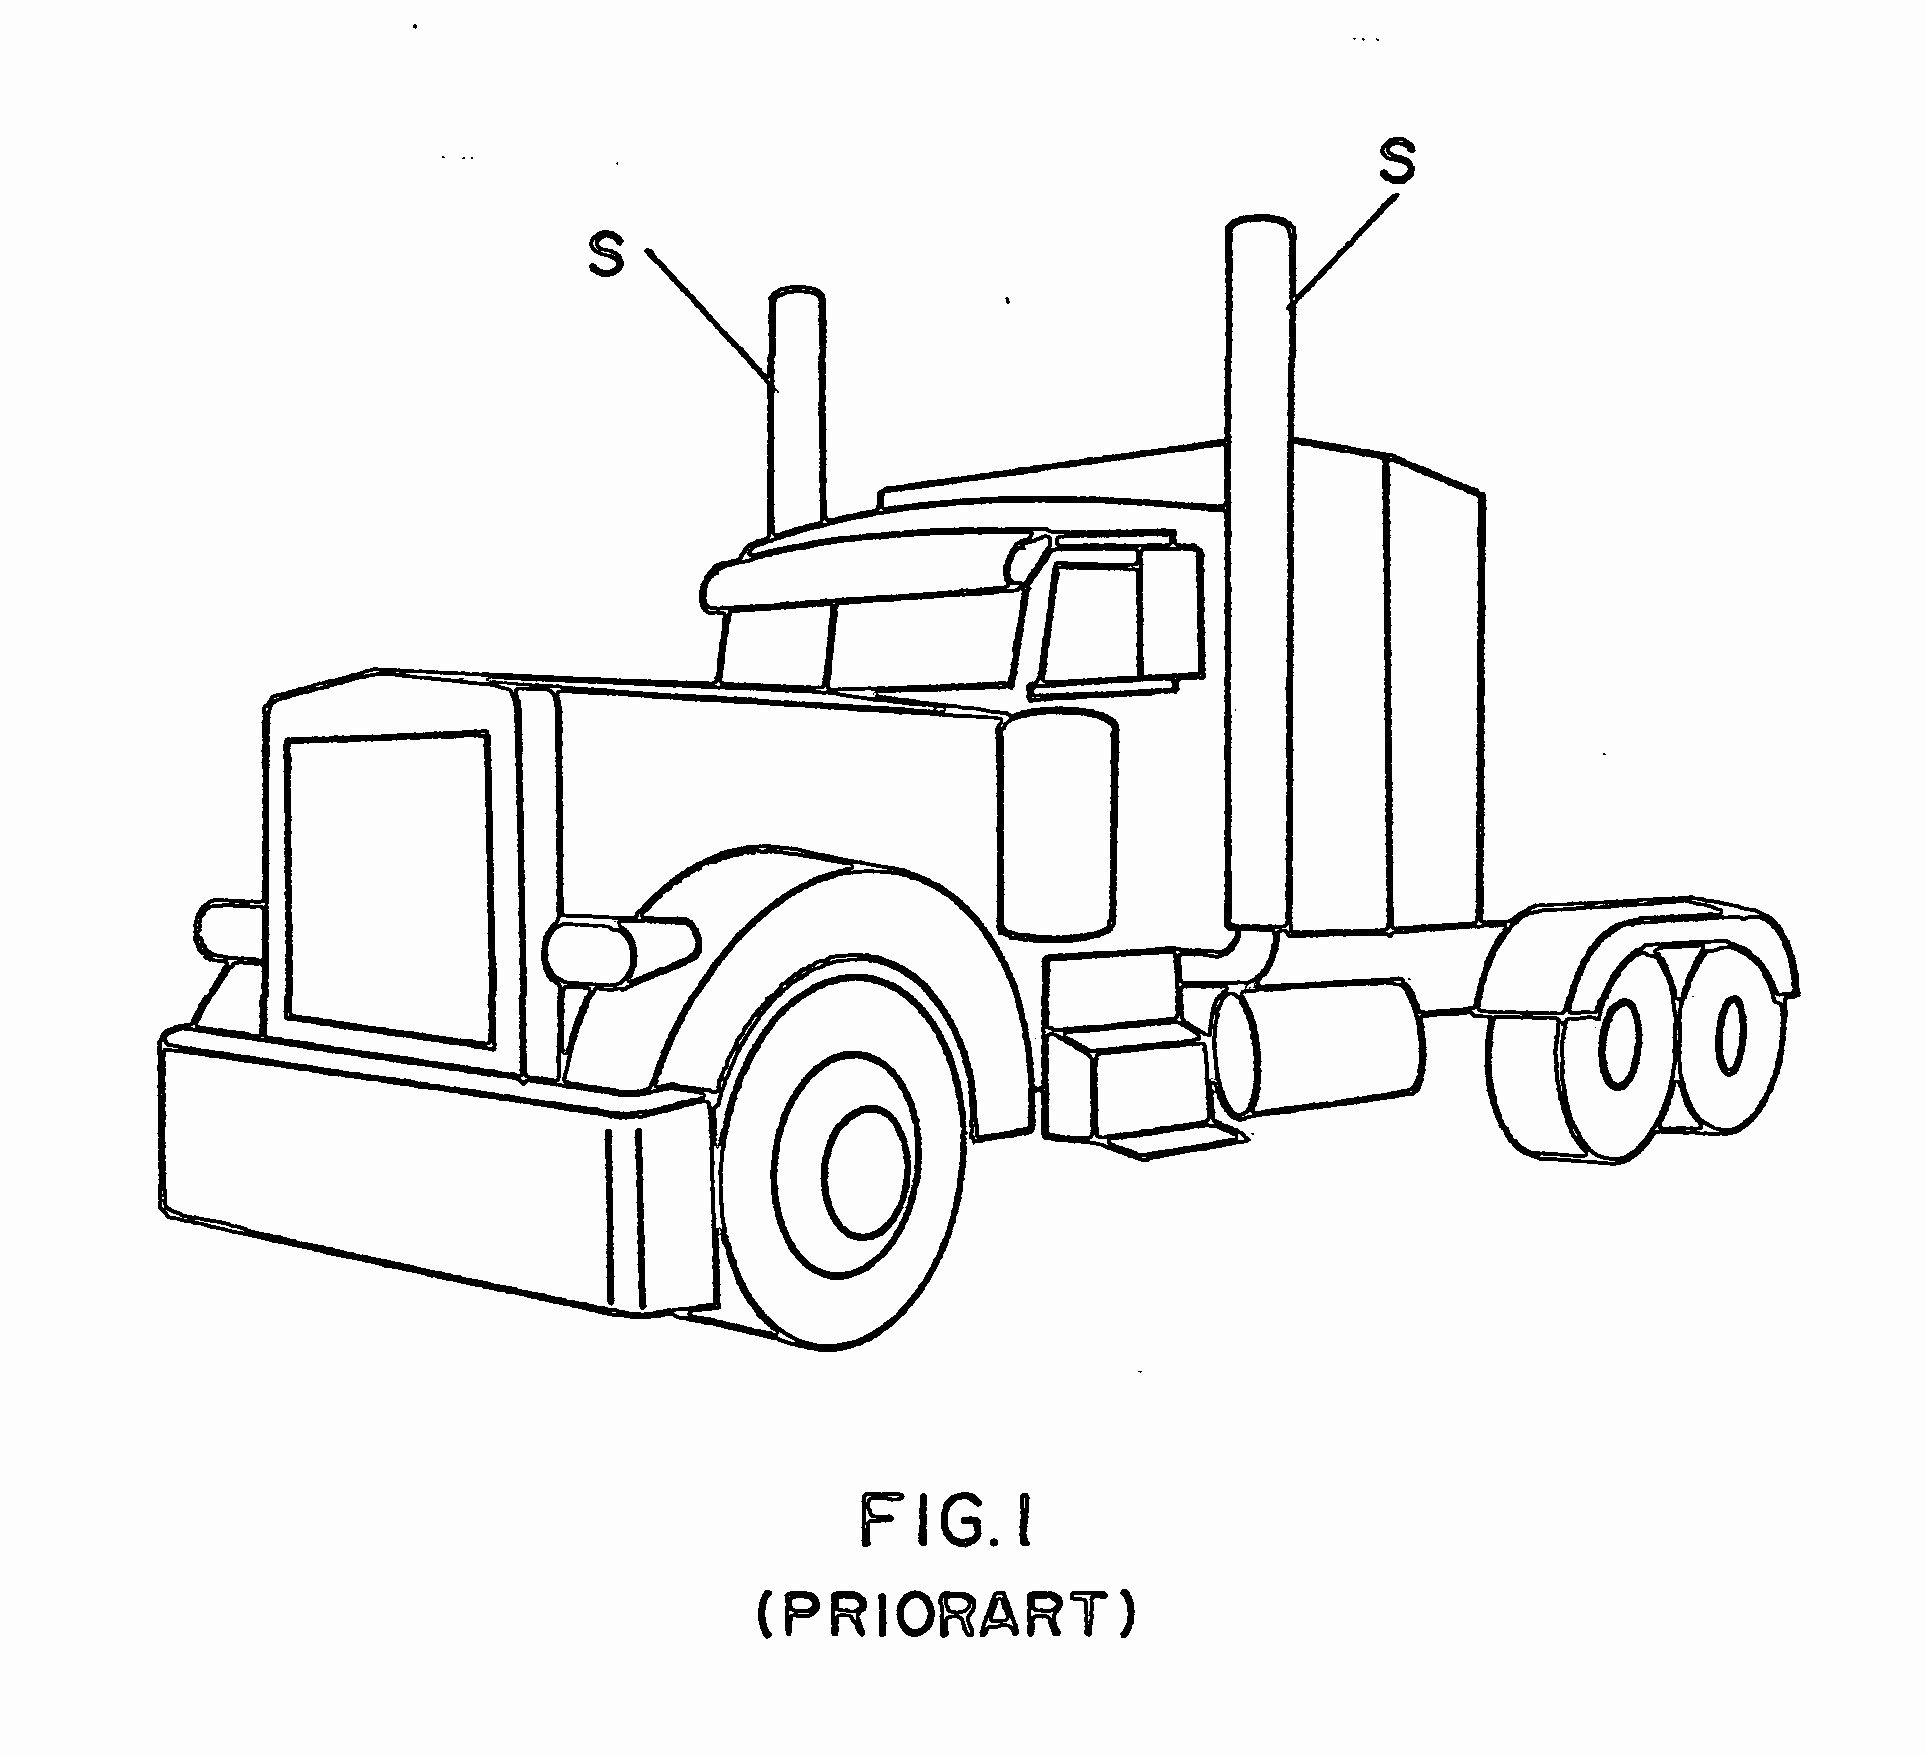 Transport Truck Coloring Pages Best Of Semi Drawing At Paintingvalley Truck Coloring Pages Coloring Pages Semi Trucks For Sale